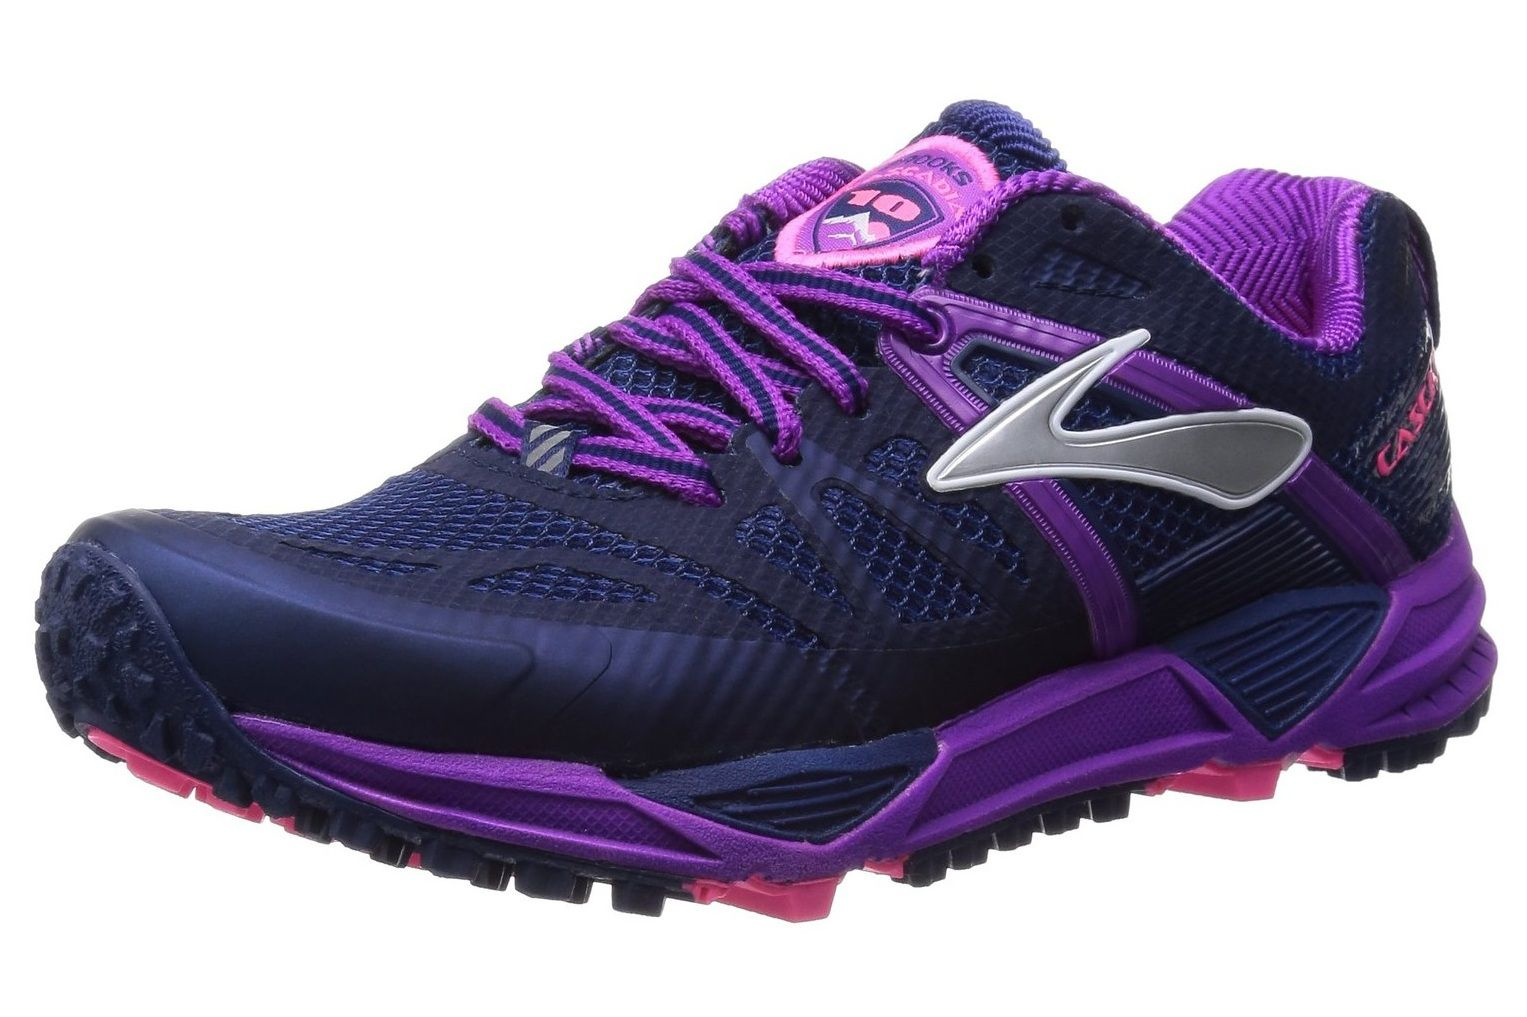 Best Trail Running Shoes For Beginners